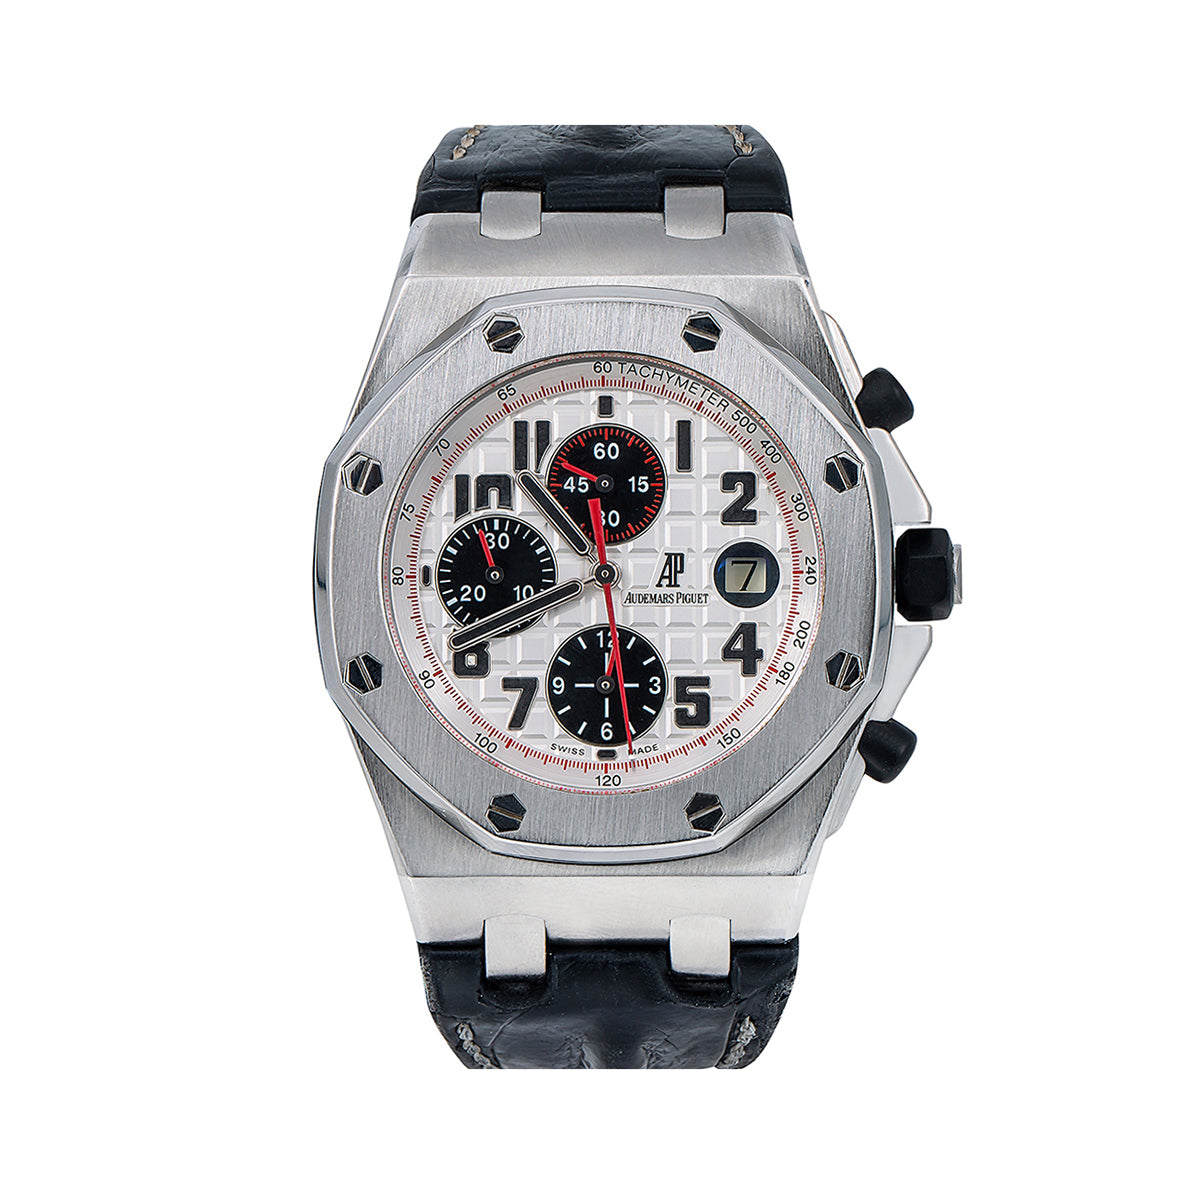 Audemars Piguet Royal Oak Offshore 26170ST 42MM White Dial With Leather Bracelet